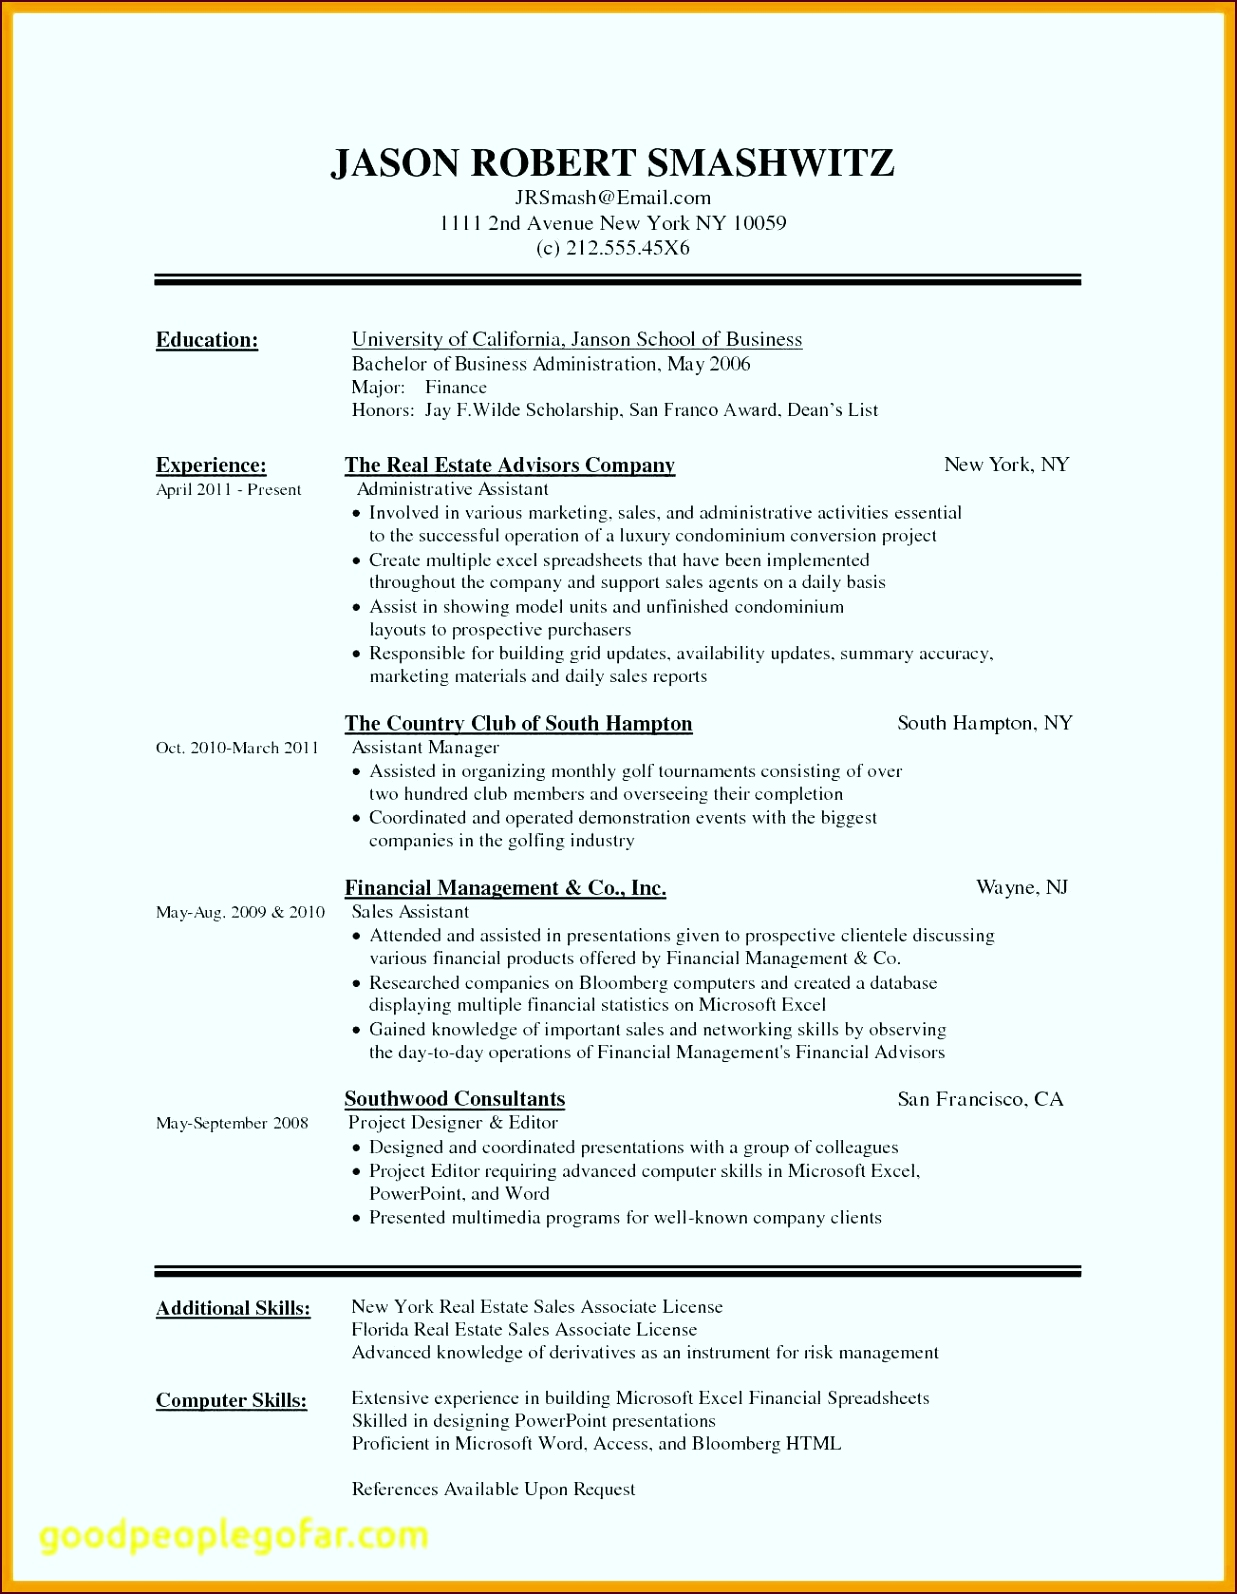 how to powerpoint free microsoft excel free von cover letter template microsoft word 2010 von microsoft excel free eaciu